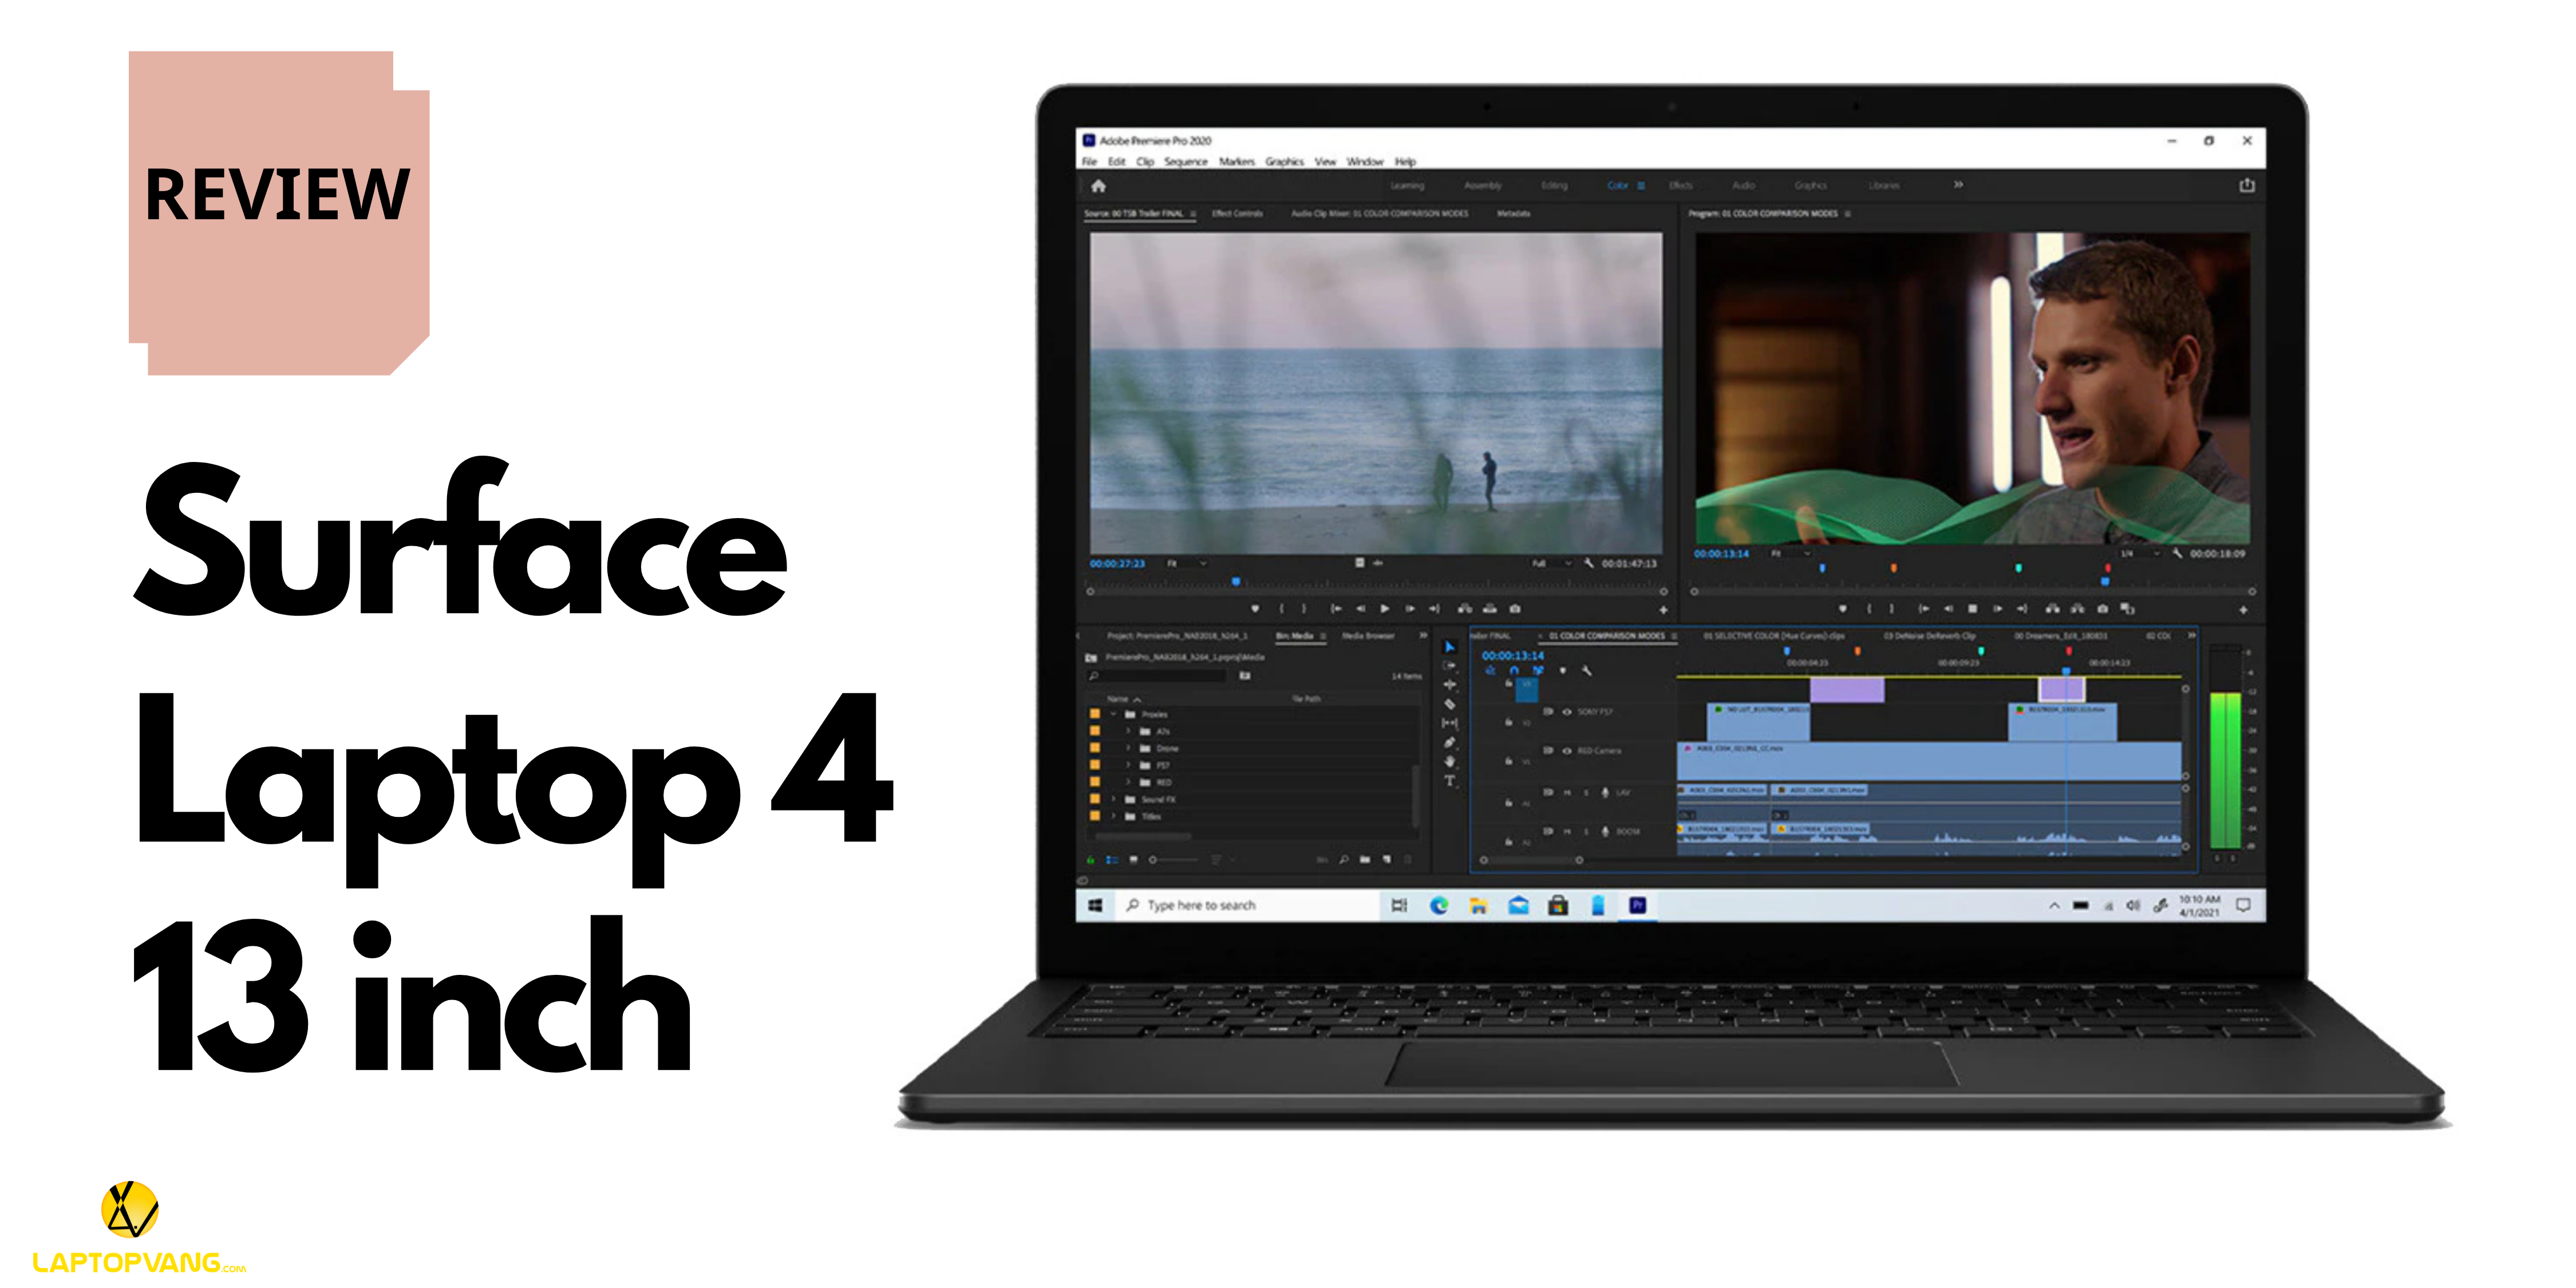 review_surface_laptop_4_13_inch